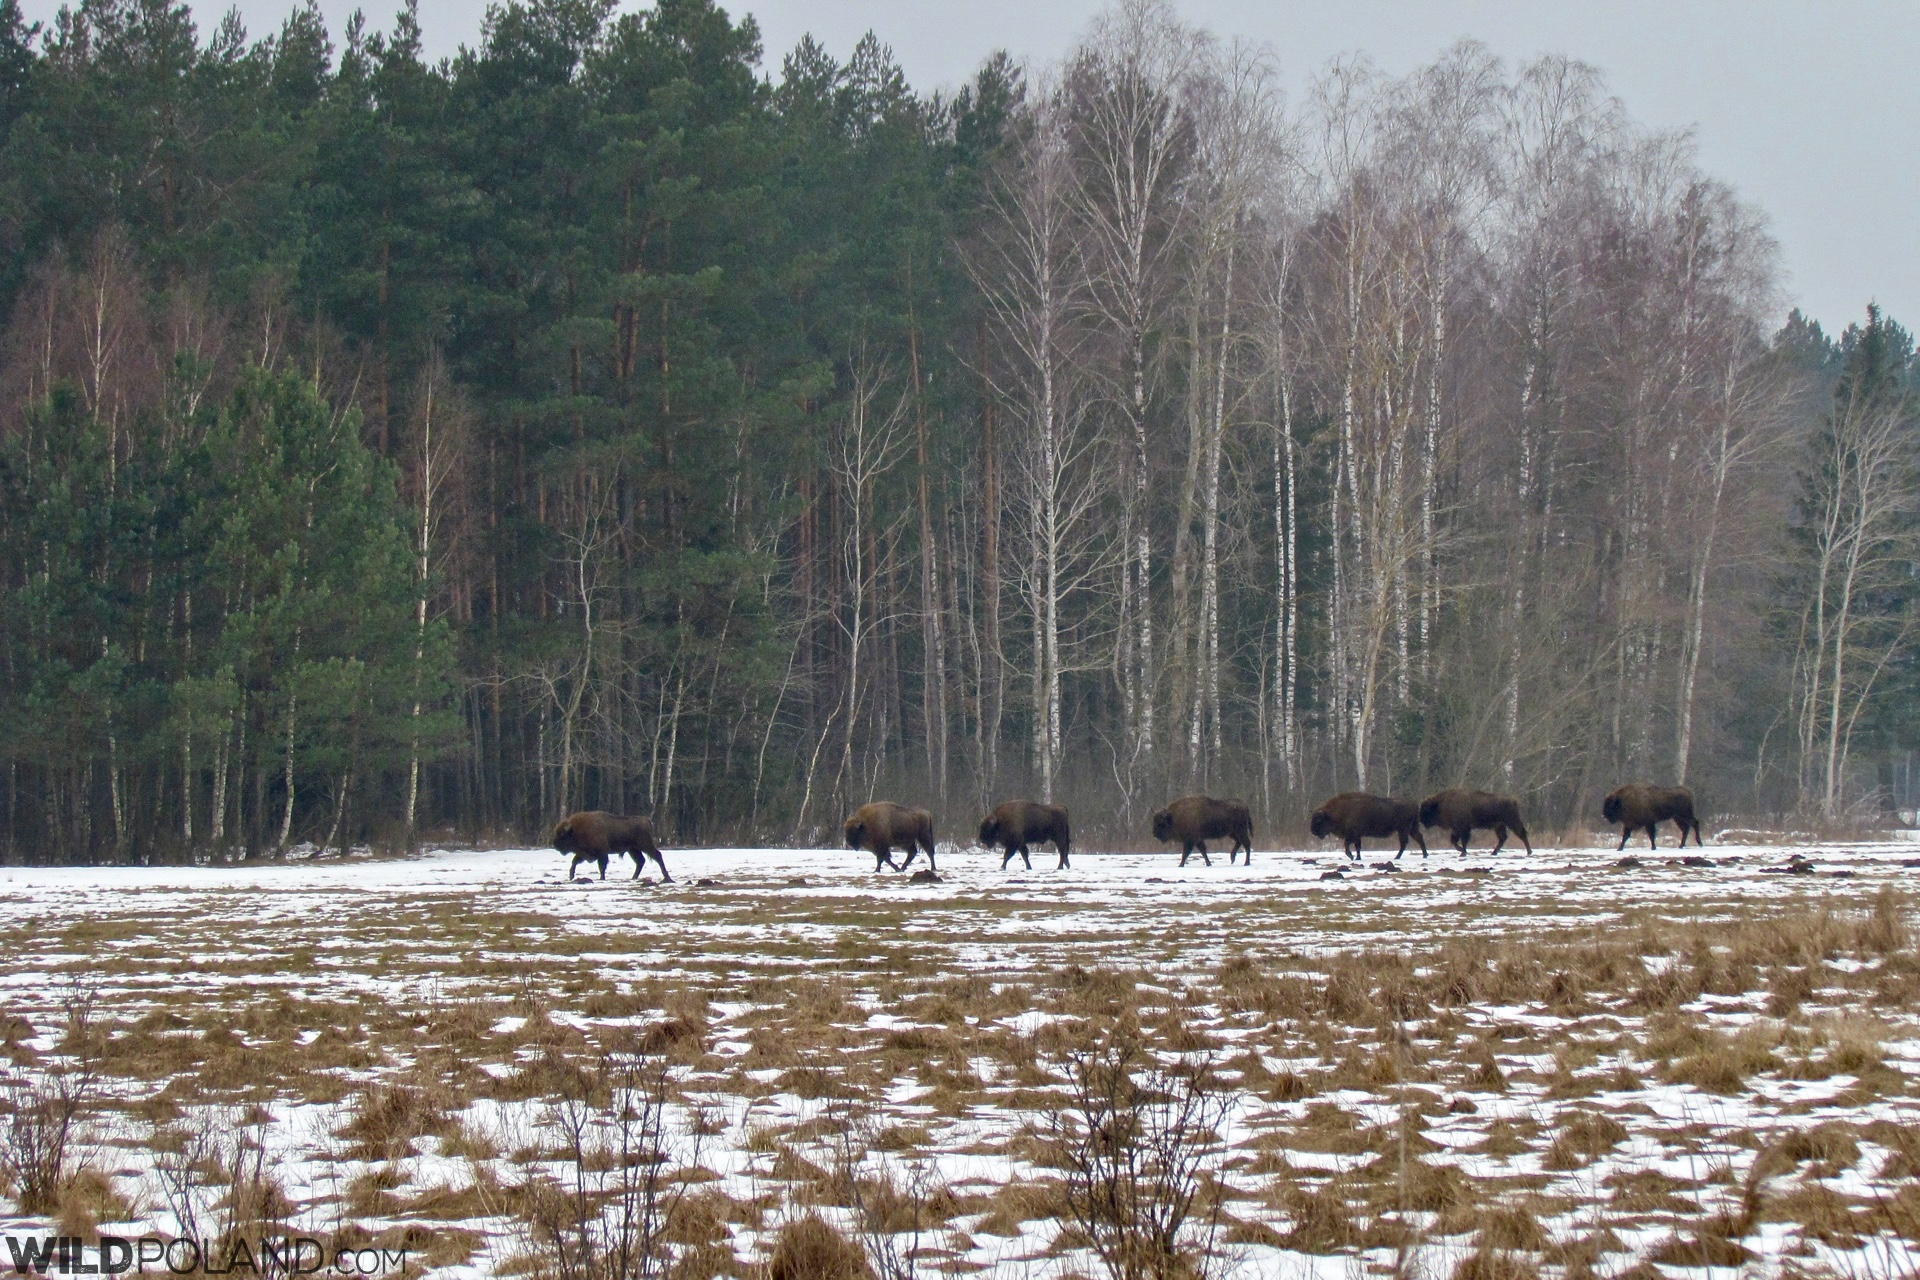 one of the herds seen during our tour